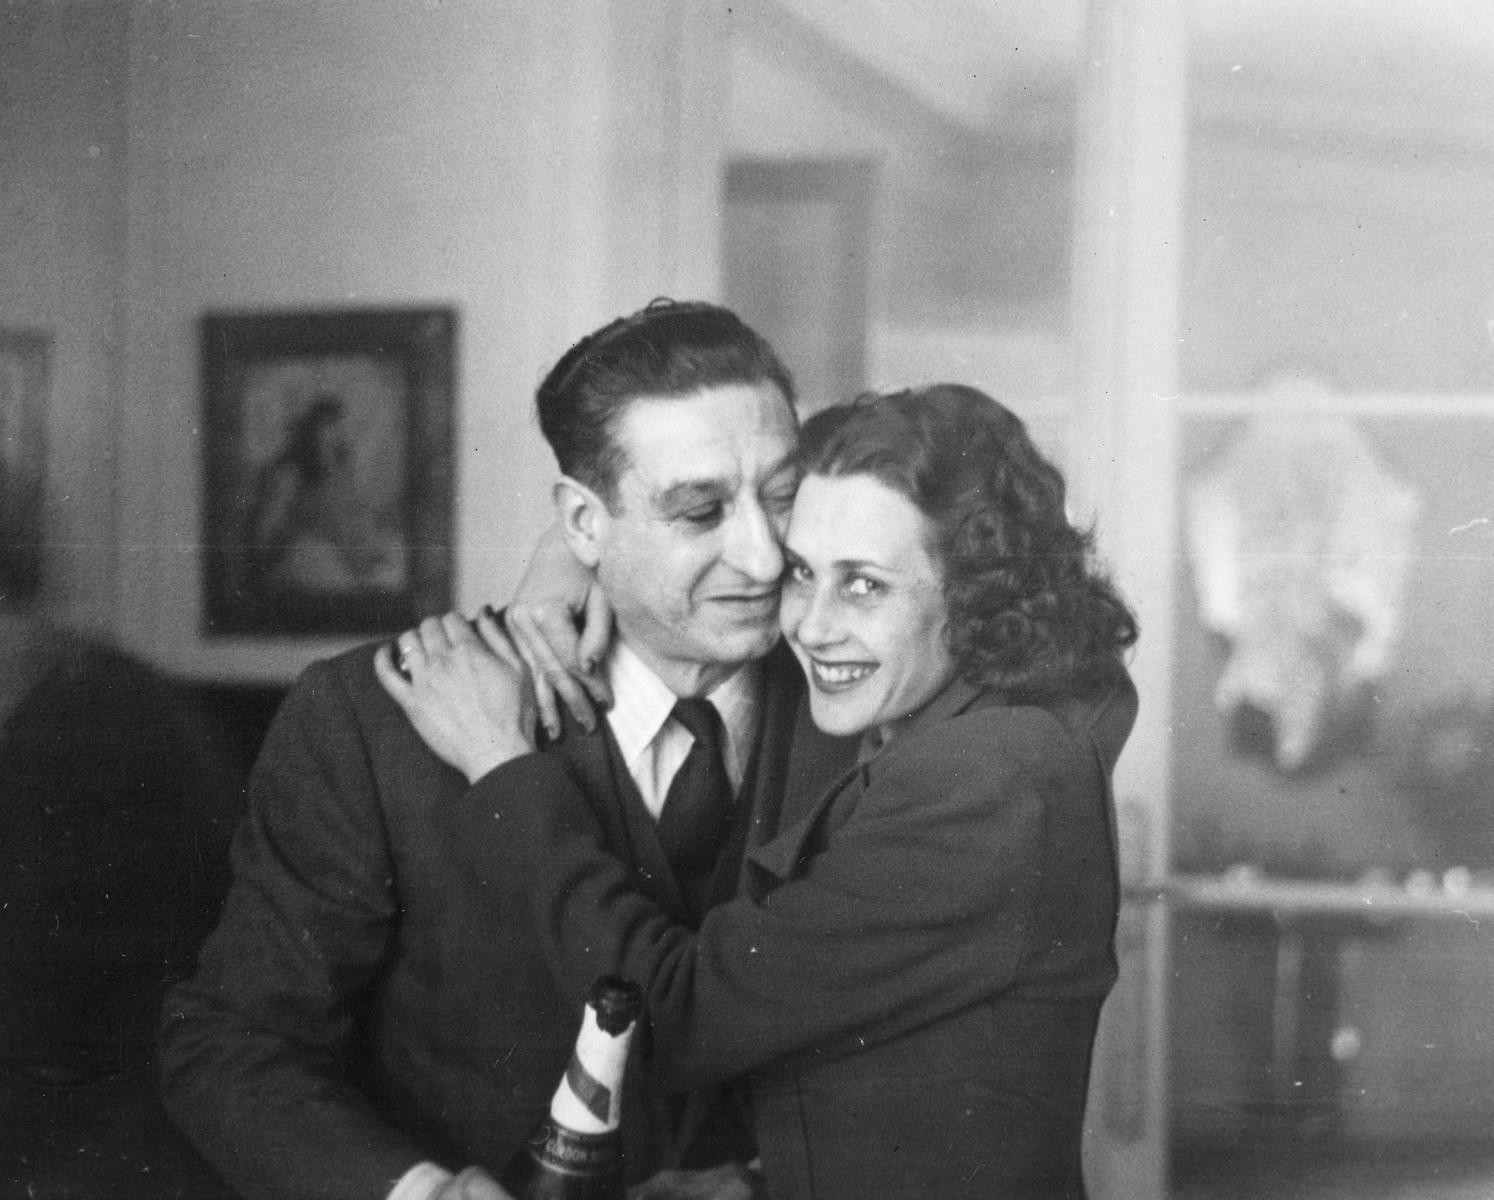 A French music hall owner poses with the Jewish dancer he is helping to hide.    Pictured are Pierre Sandrini and Sadie Rigal.  Pierre Sandrini helped save four Jewish employees of the Bal Tabarin.